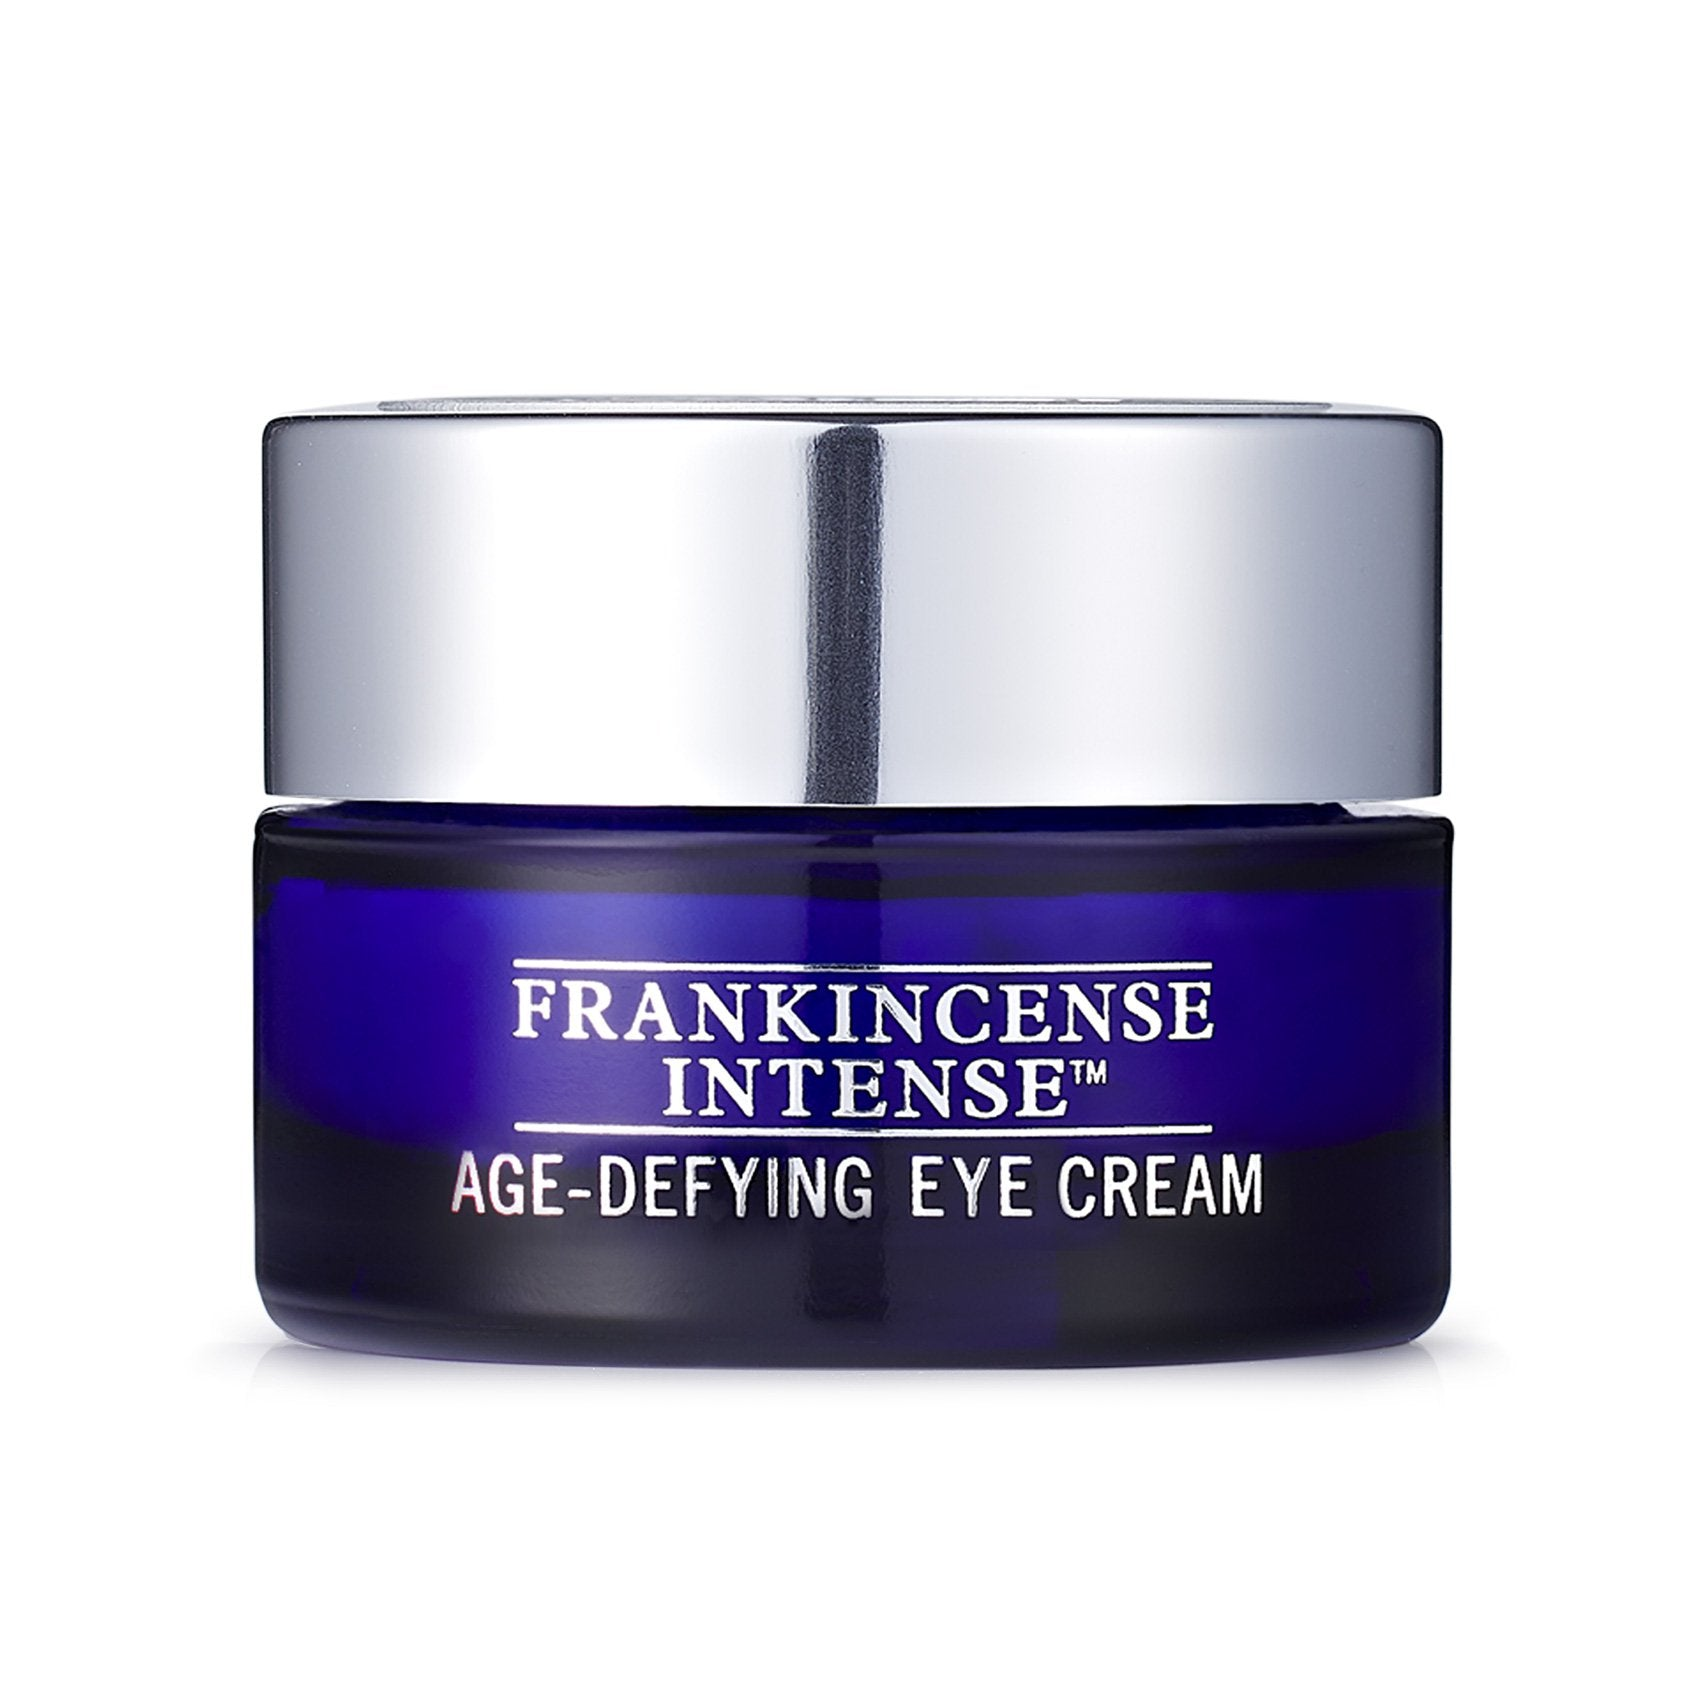 Frankincense Intense Age Defying Eye Cream